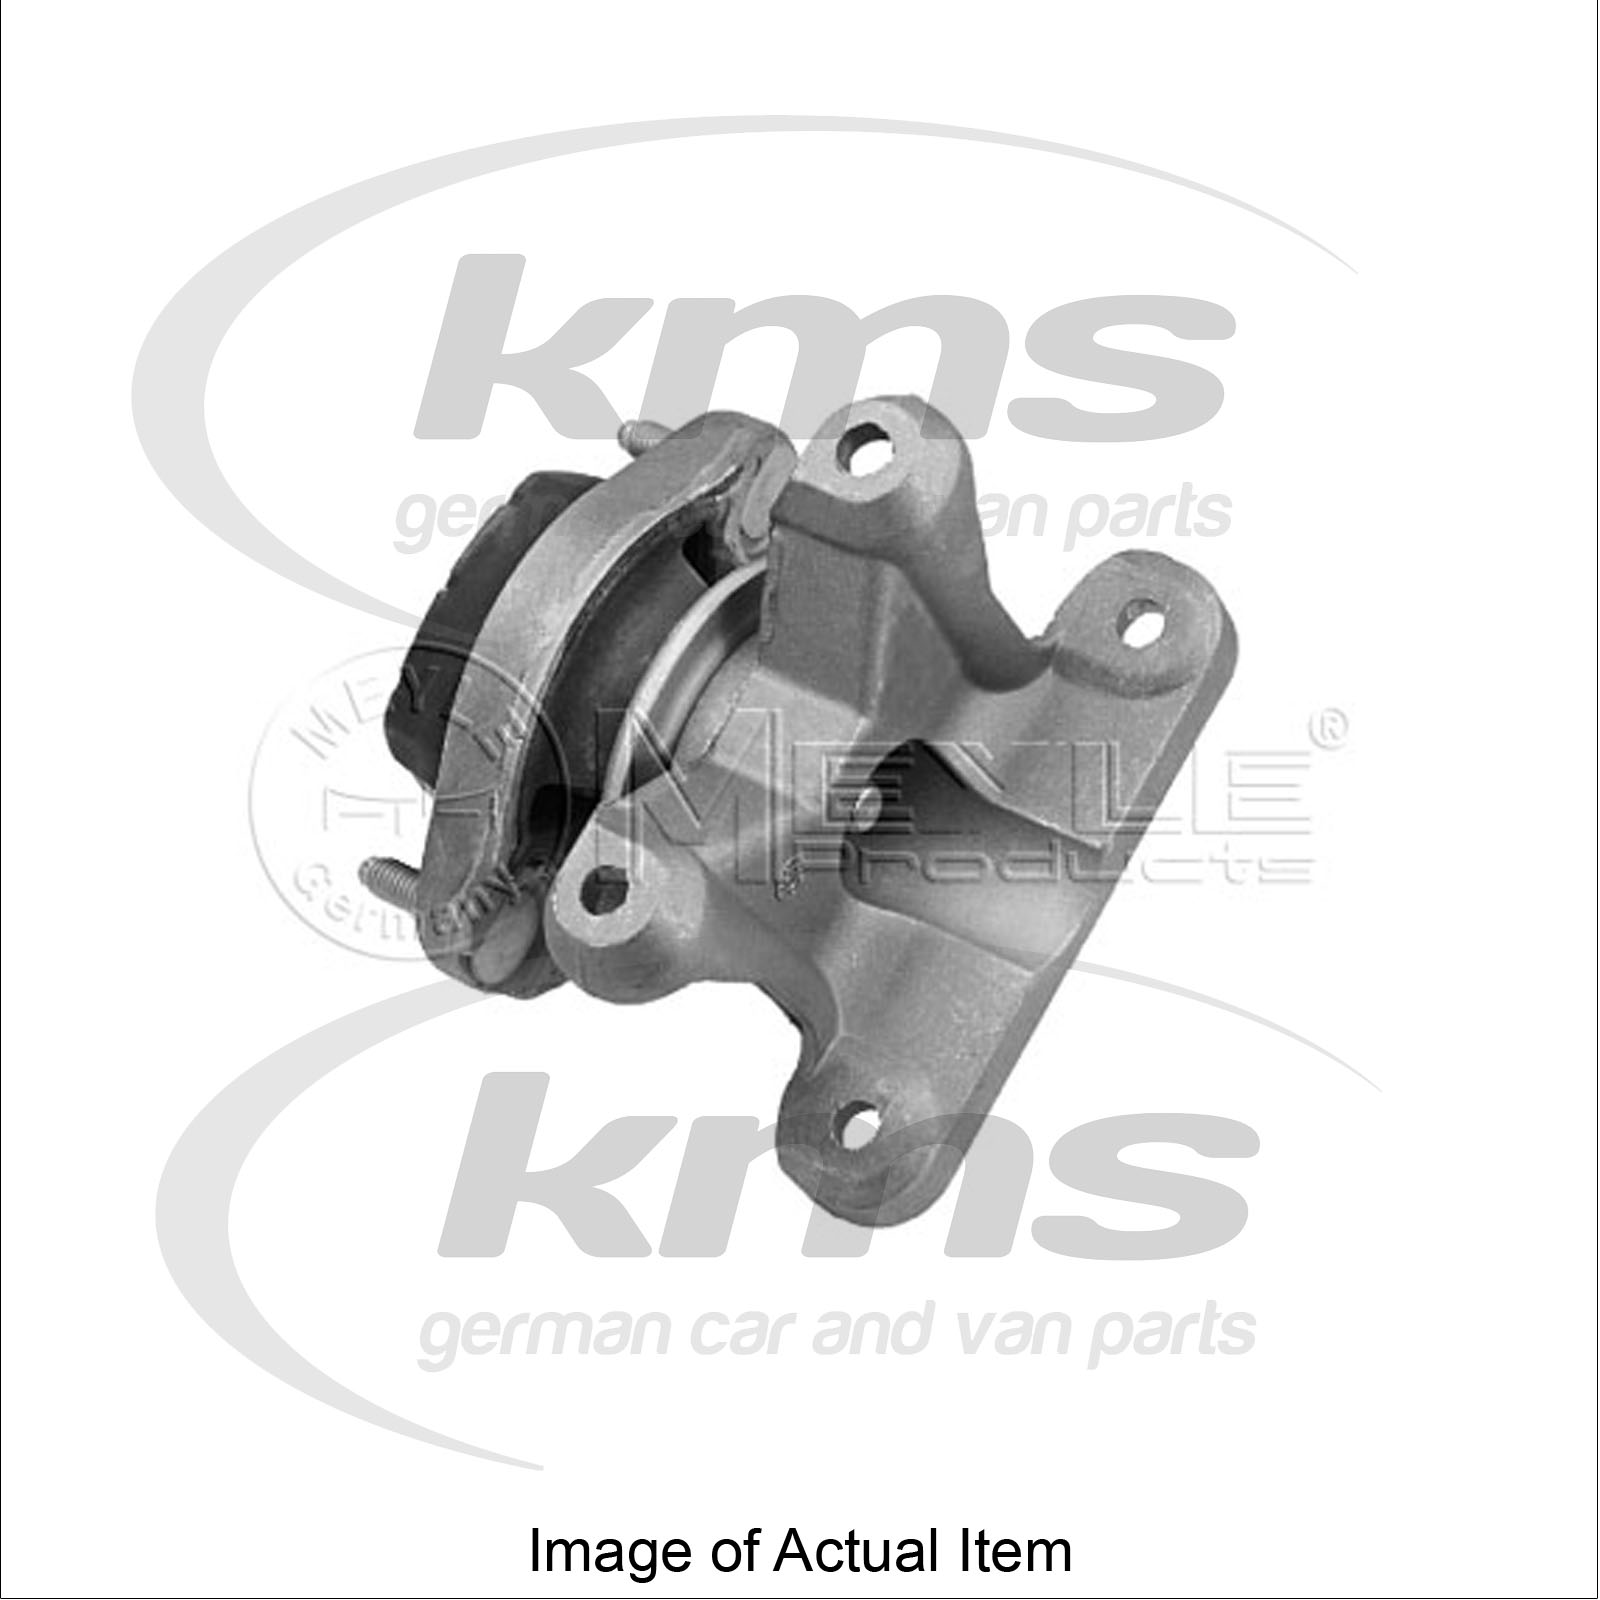 MOUNTING For MANUAL TRANSMISSION AUDI A4 Convertible (8H7